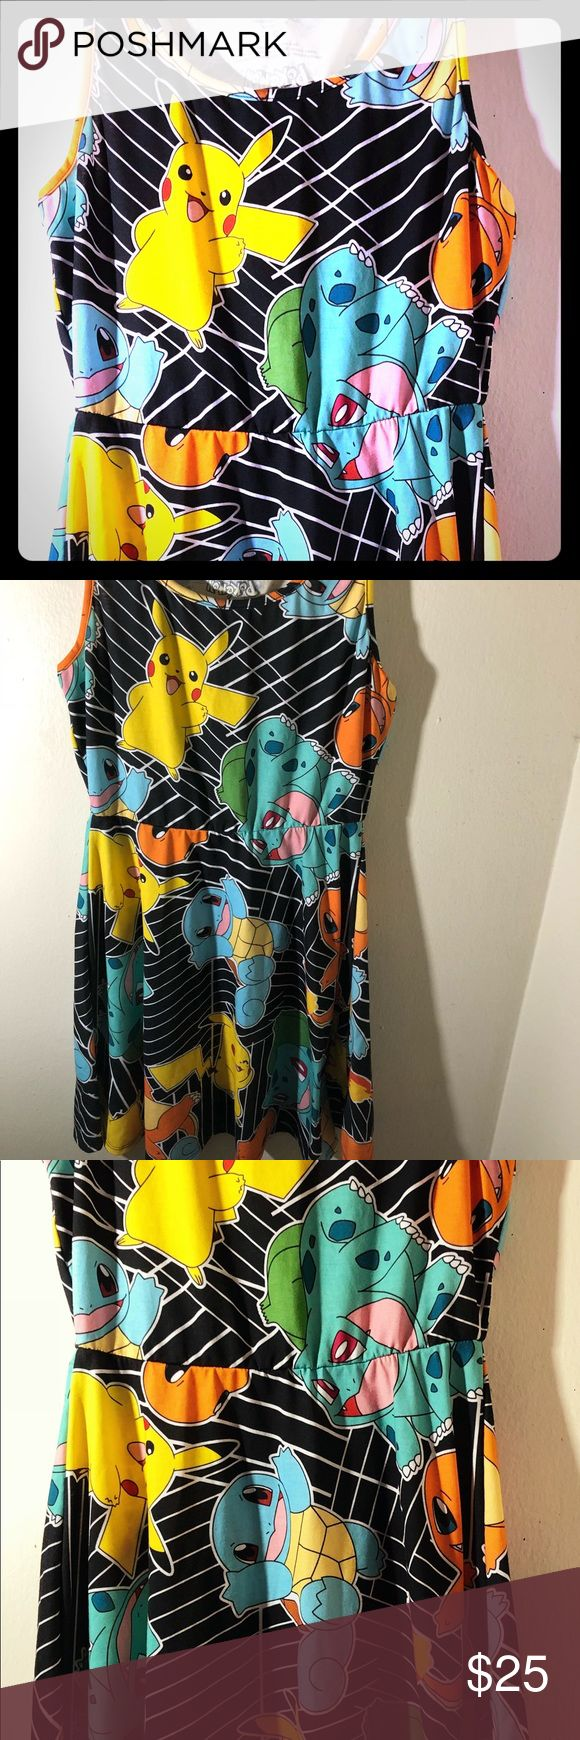 Pokemon Starters Dress Like new condition. Never worn, missing original tags. Size small. No signs of wear and tear or damage. Covered in cute classic Pokémon (pikachu, squirtle, charmander, and bulbasaur. Pokemon Dresses